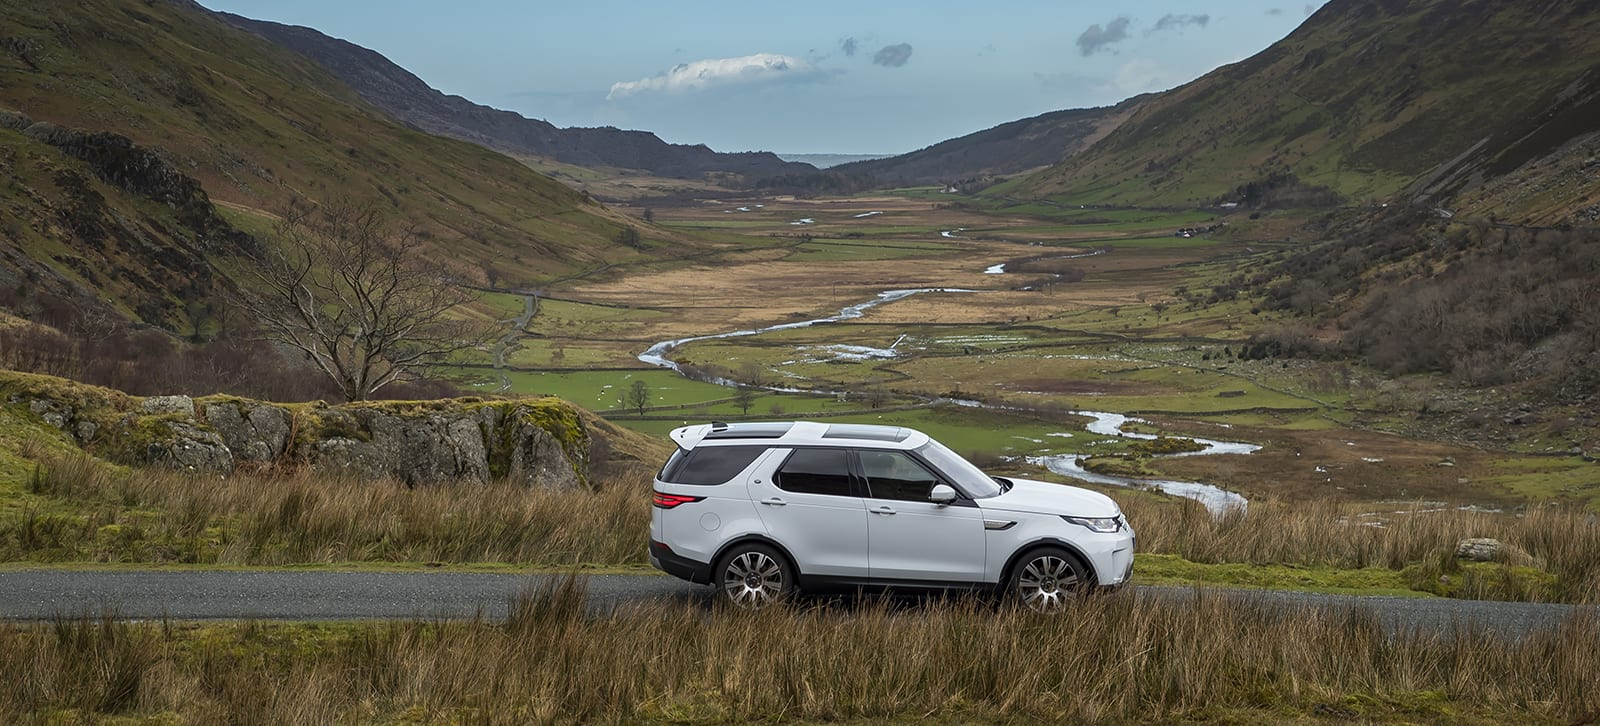 Discovering Wiltshire Picnic Spots in the All New Land Rover Discovery